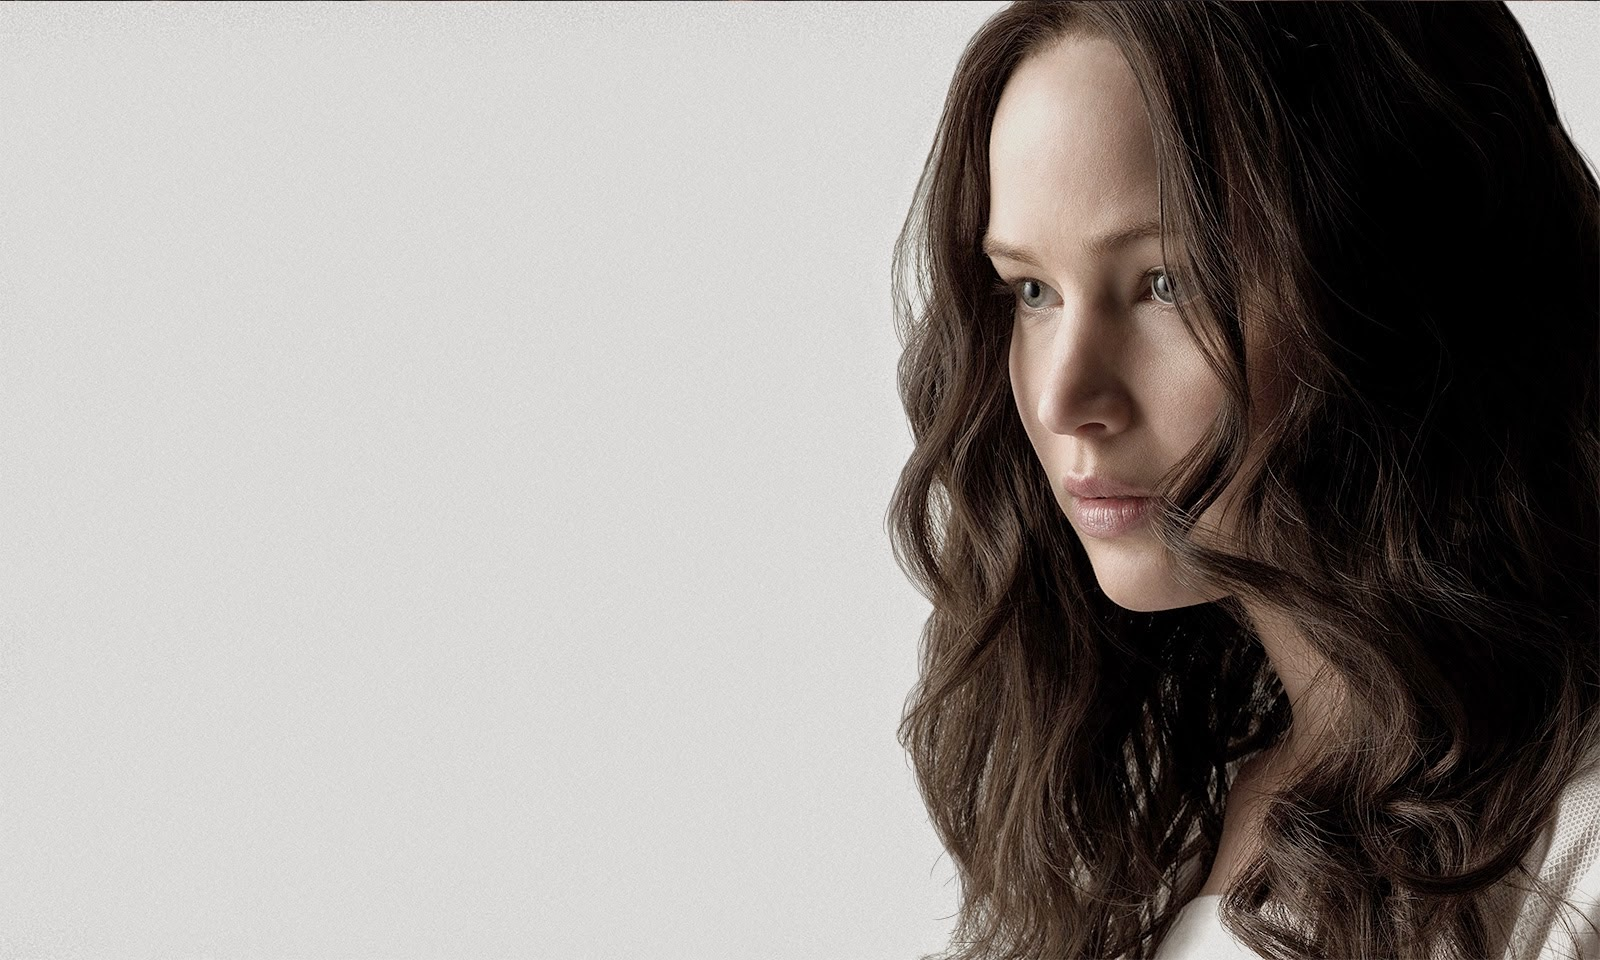 hunger games mockingjay part wallpapers - 16 The Hunger Games Mockingjay Part 1 HD Wallpapers